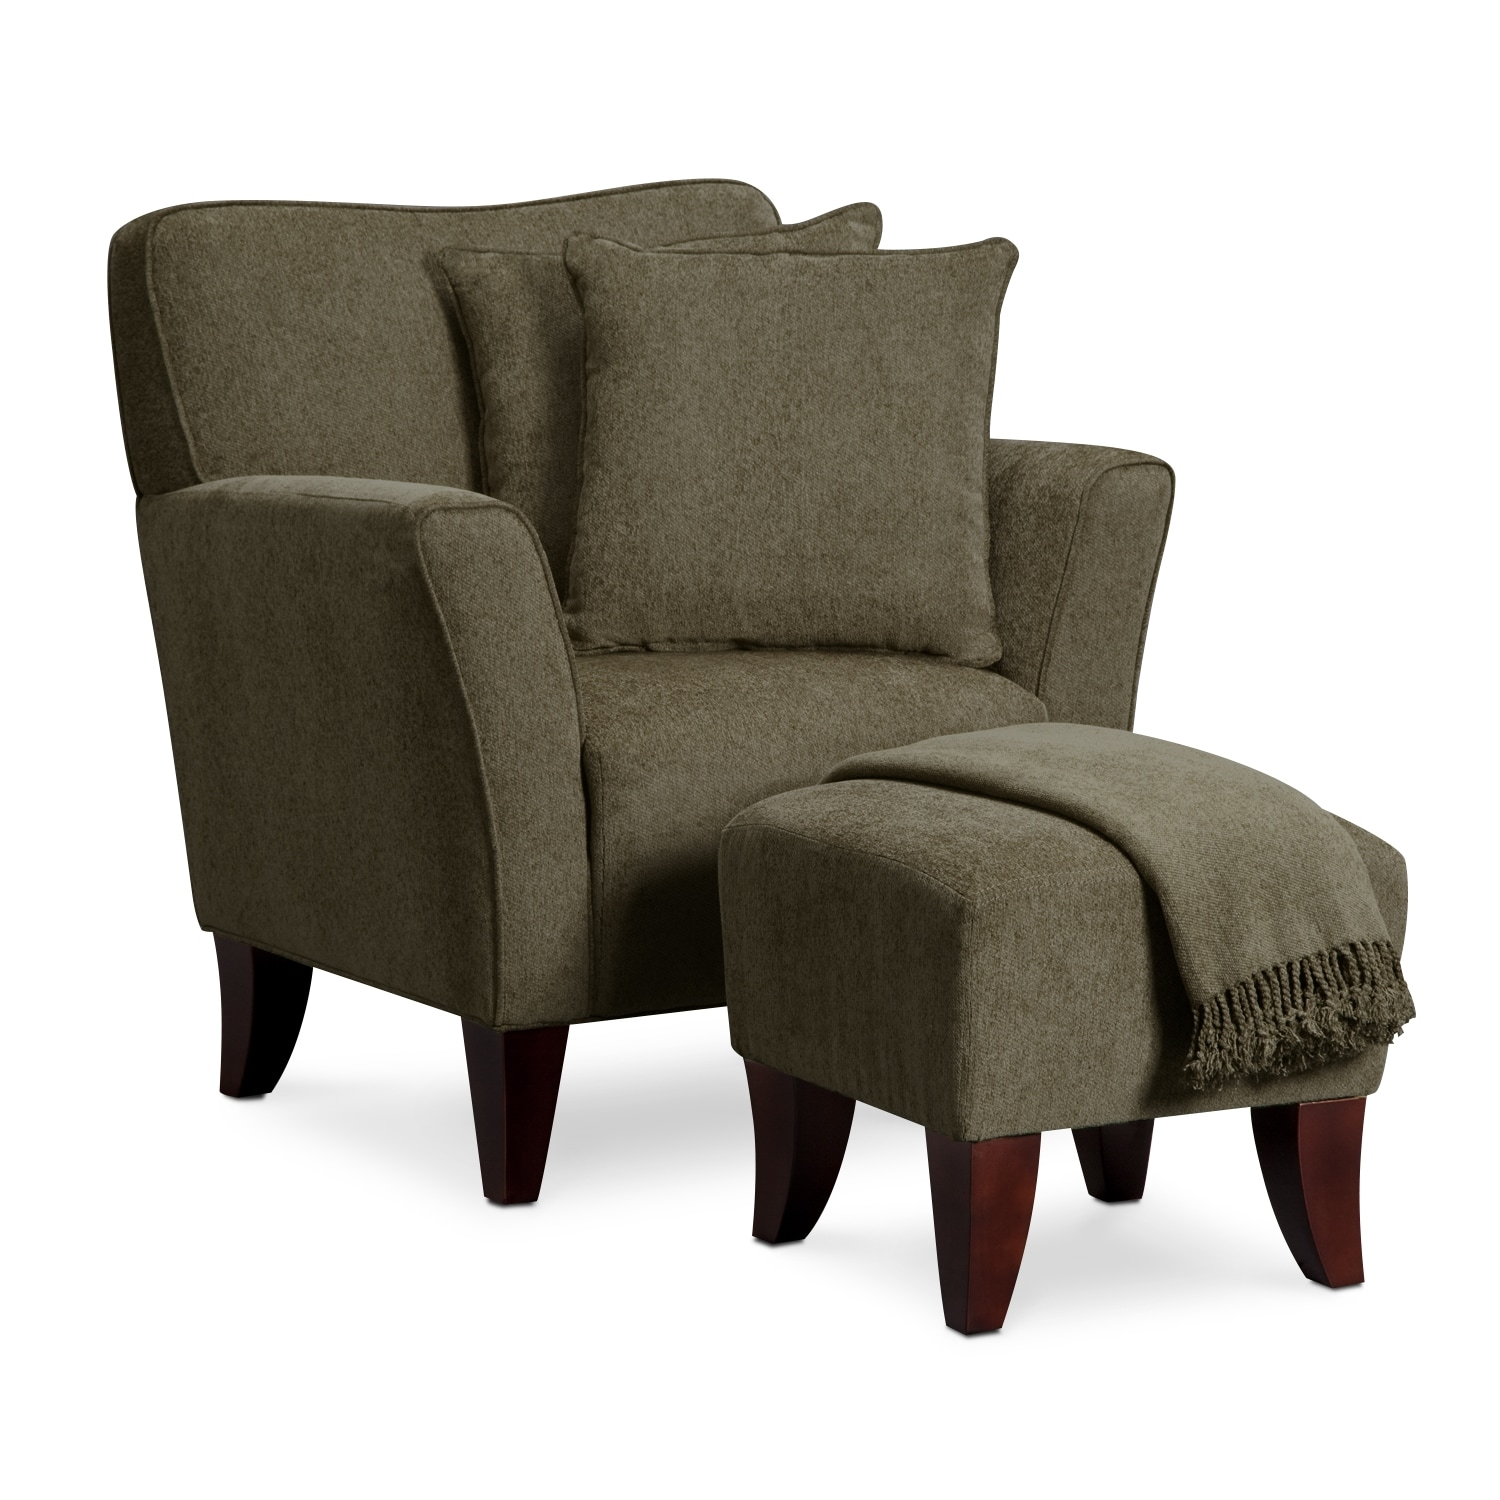 Celeste Chair, Ottoman, Pillows and Throw - Sage